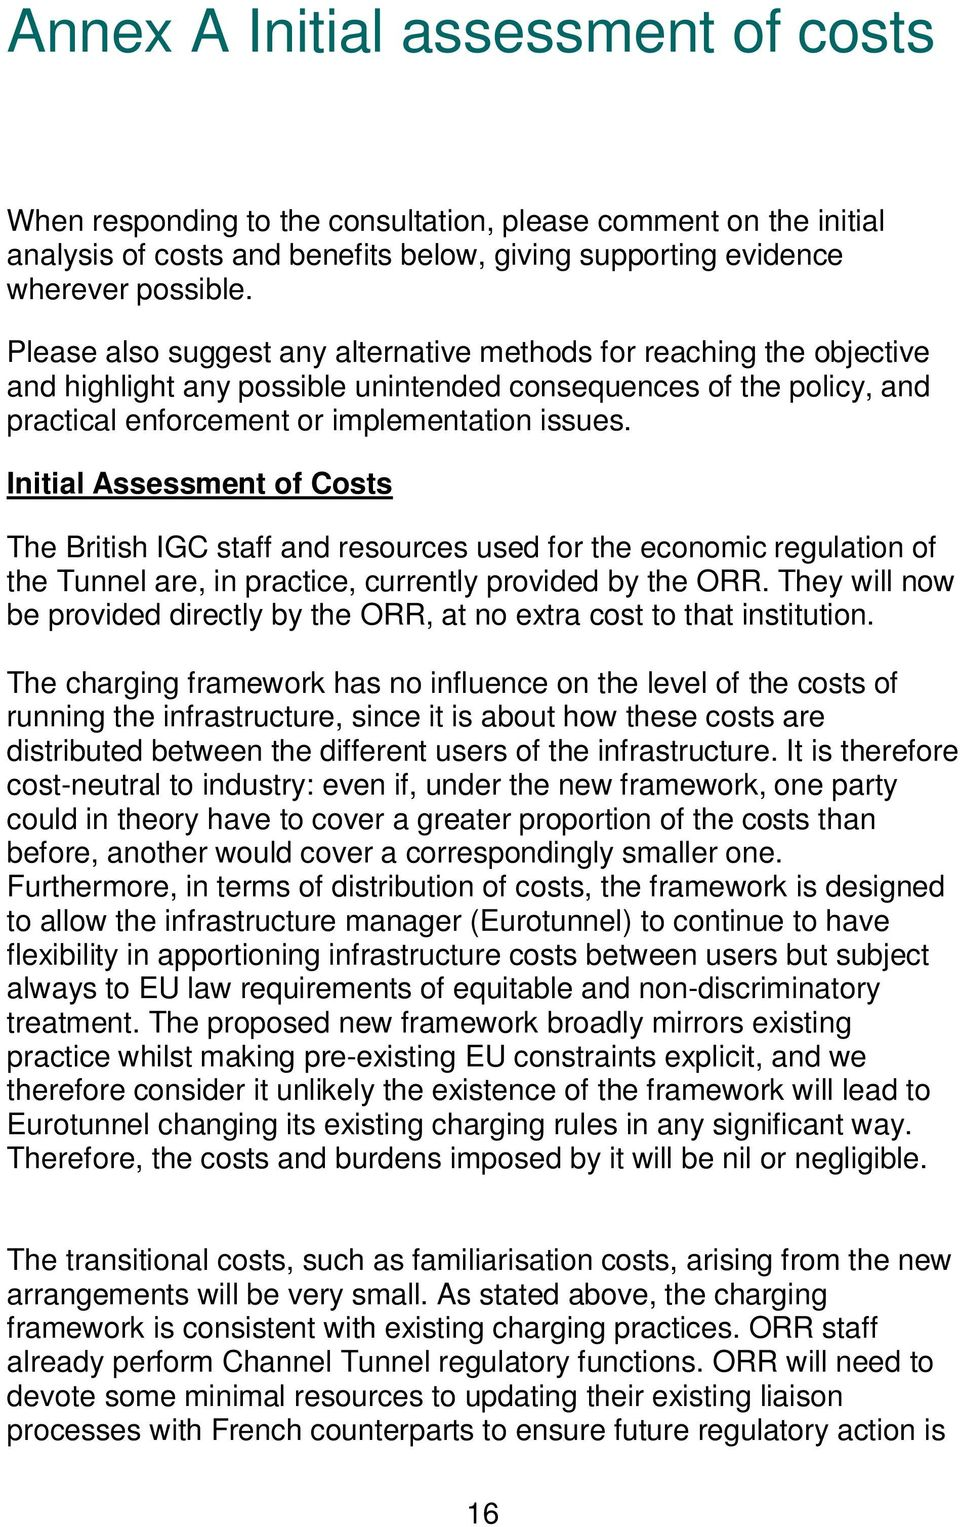 Initial Assessment of Costs The British IGC staff and resources used for the economic regulation of the Tunnel are, in practice, currently provided by the ORR.